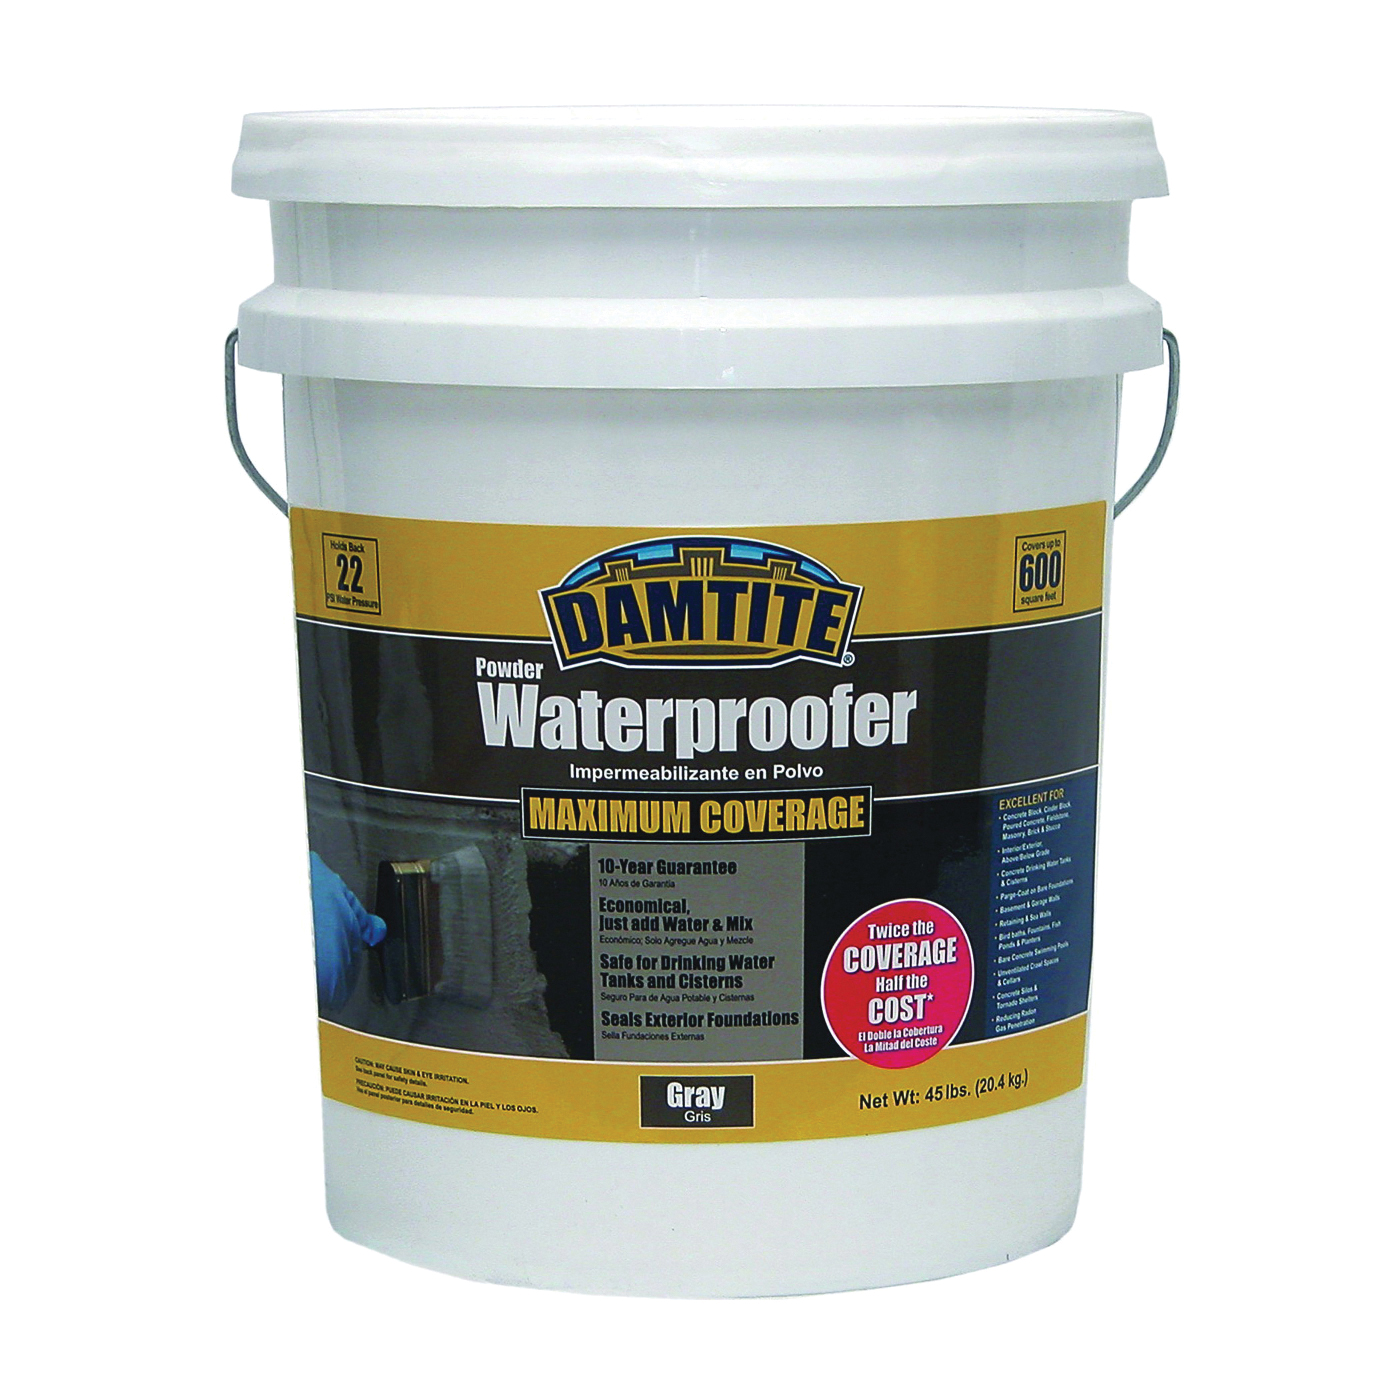 Picture of DAMTITE 02451 Powder Waterproofer, Gray, Powder, 45 lb Package, Pail